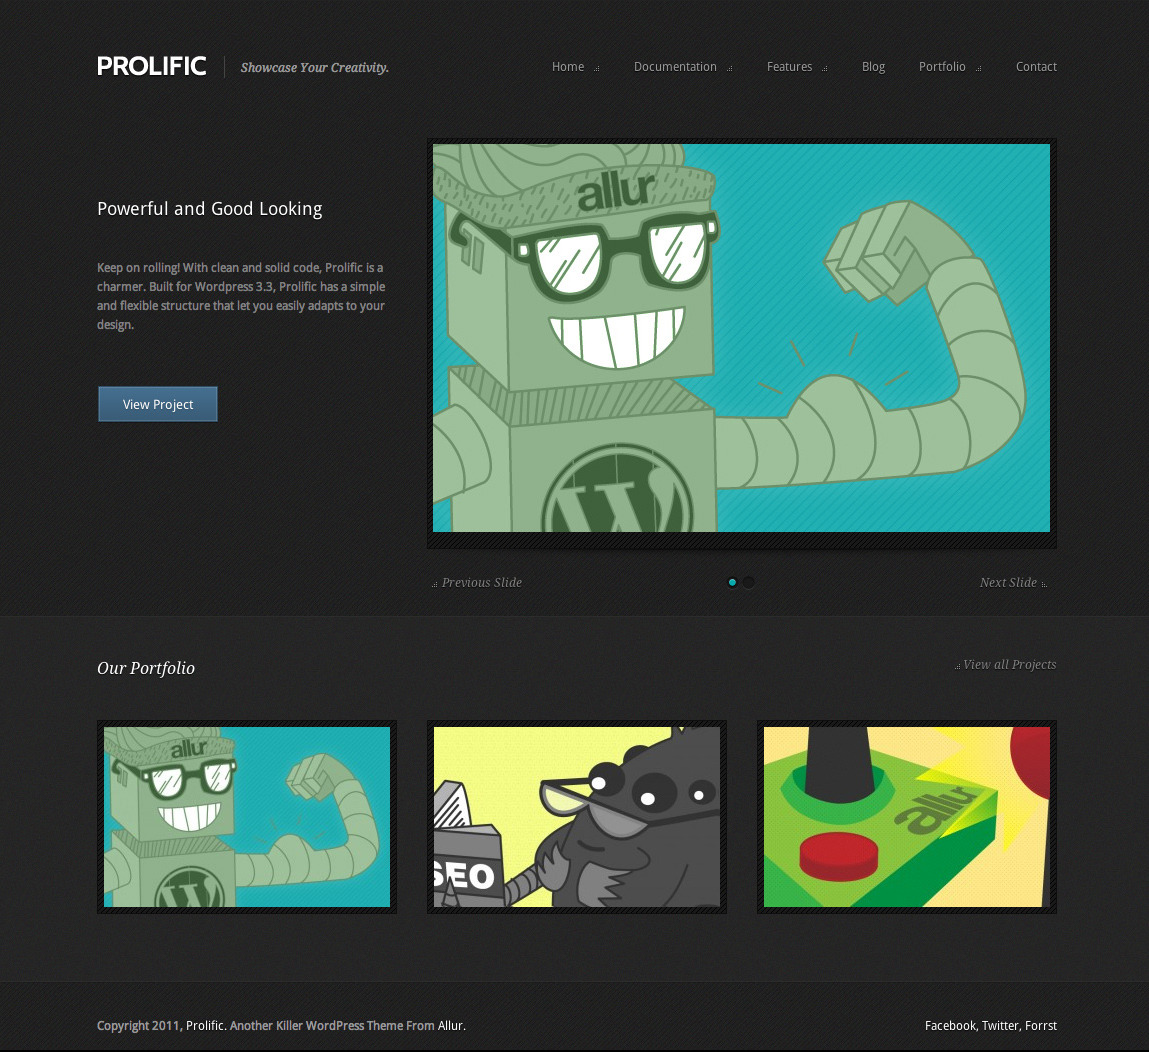 Prolific: A Modern WordPress Portfolio Theme